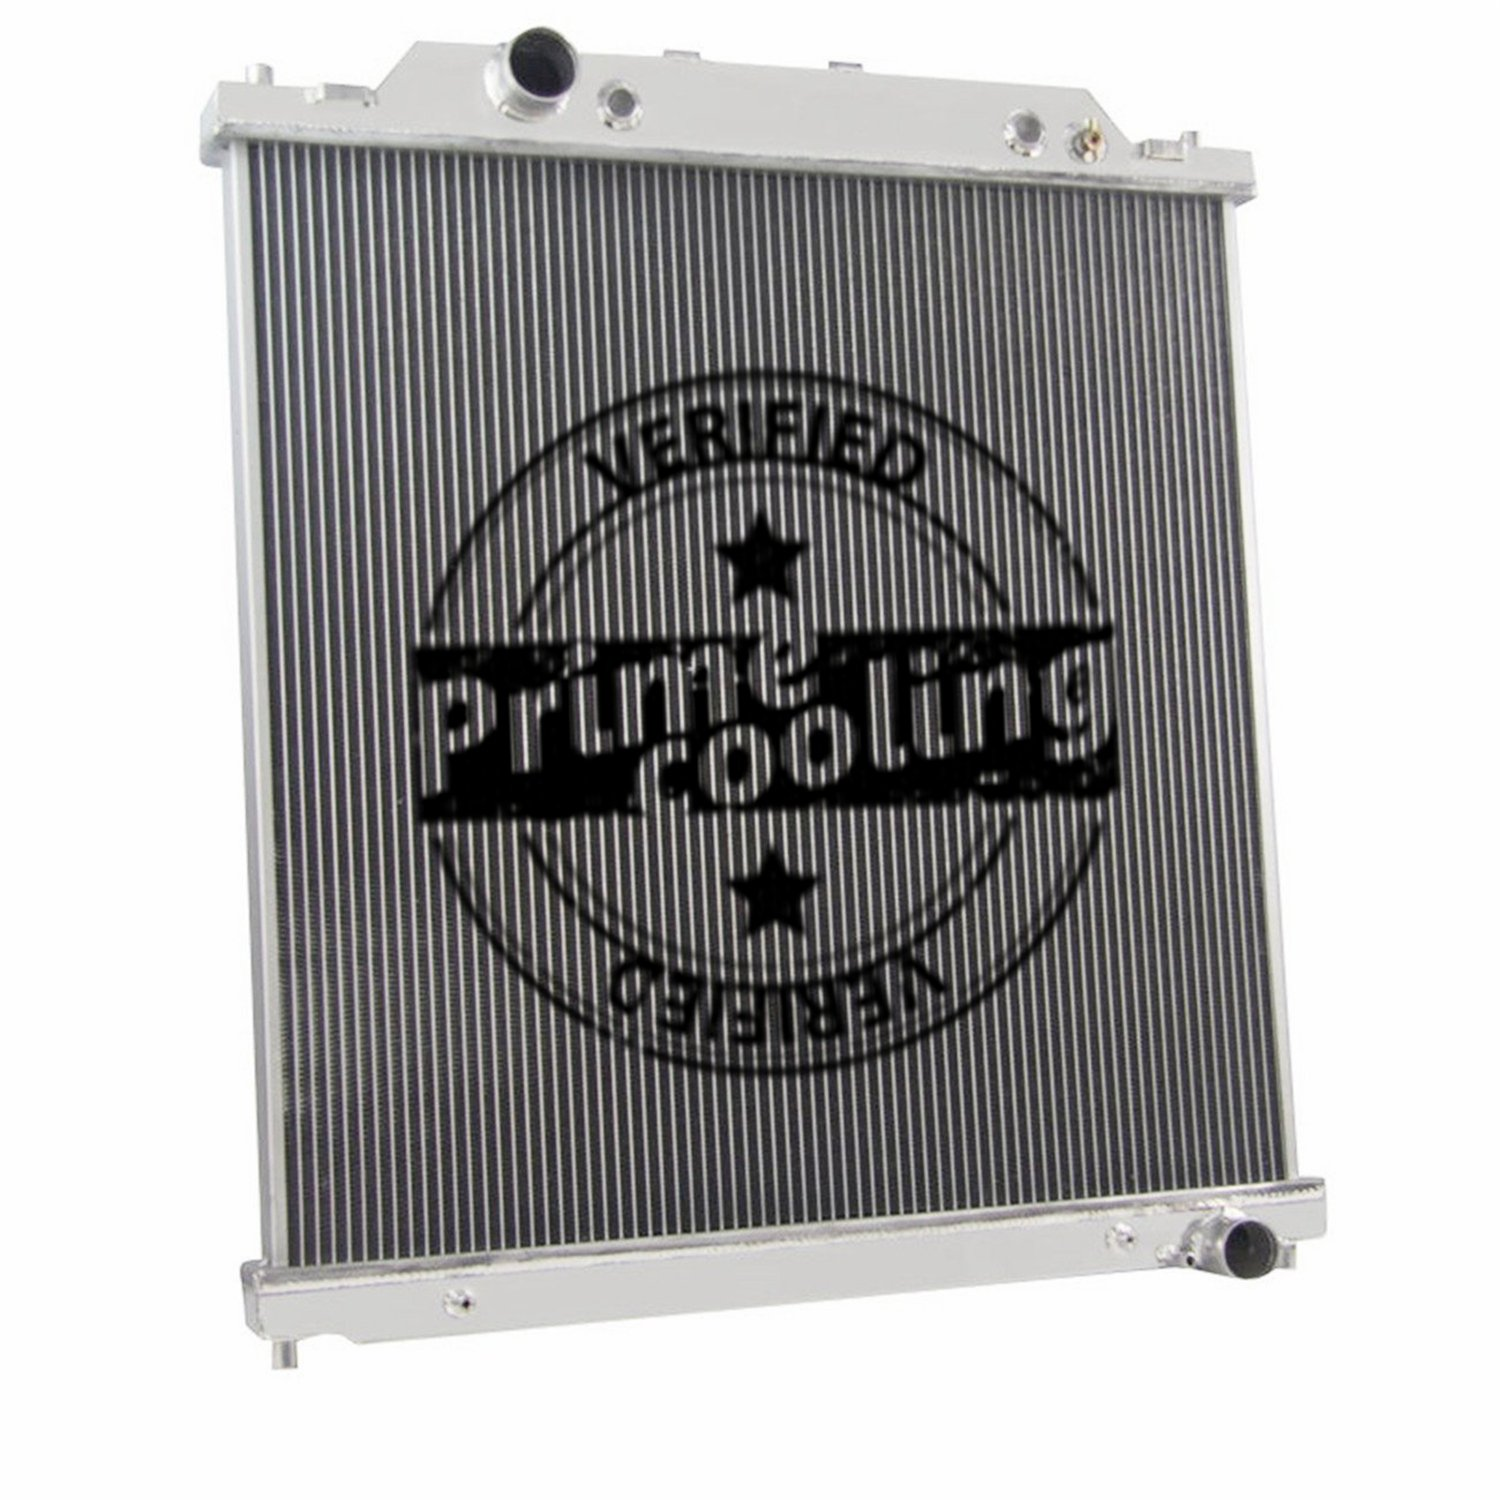 2 Row Dual-Core Aluminum Radiator for Ford F250 /F350 /Excursion 2003-07 (6.0L Turbo Diesel Powerstroke Engine) by Prime Cooling